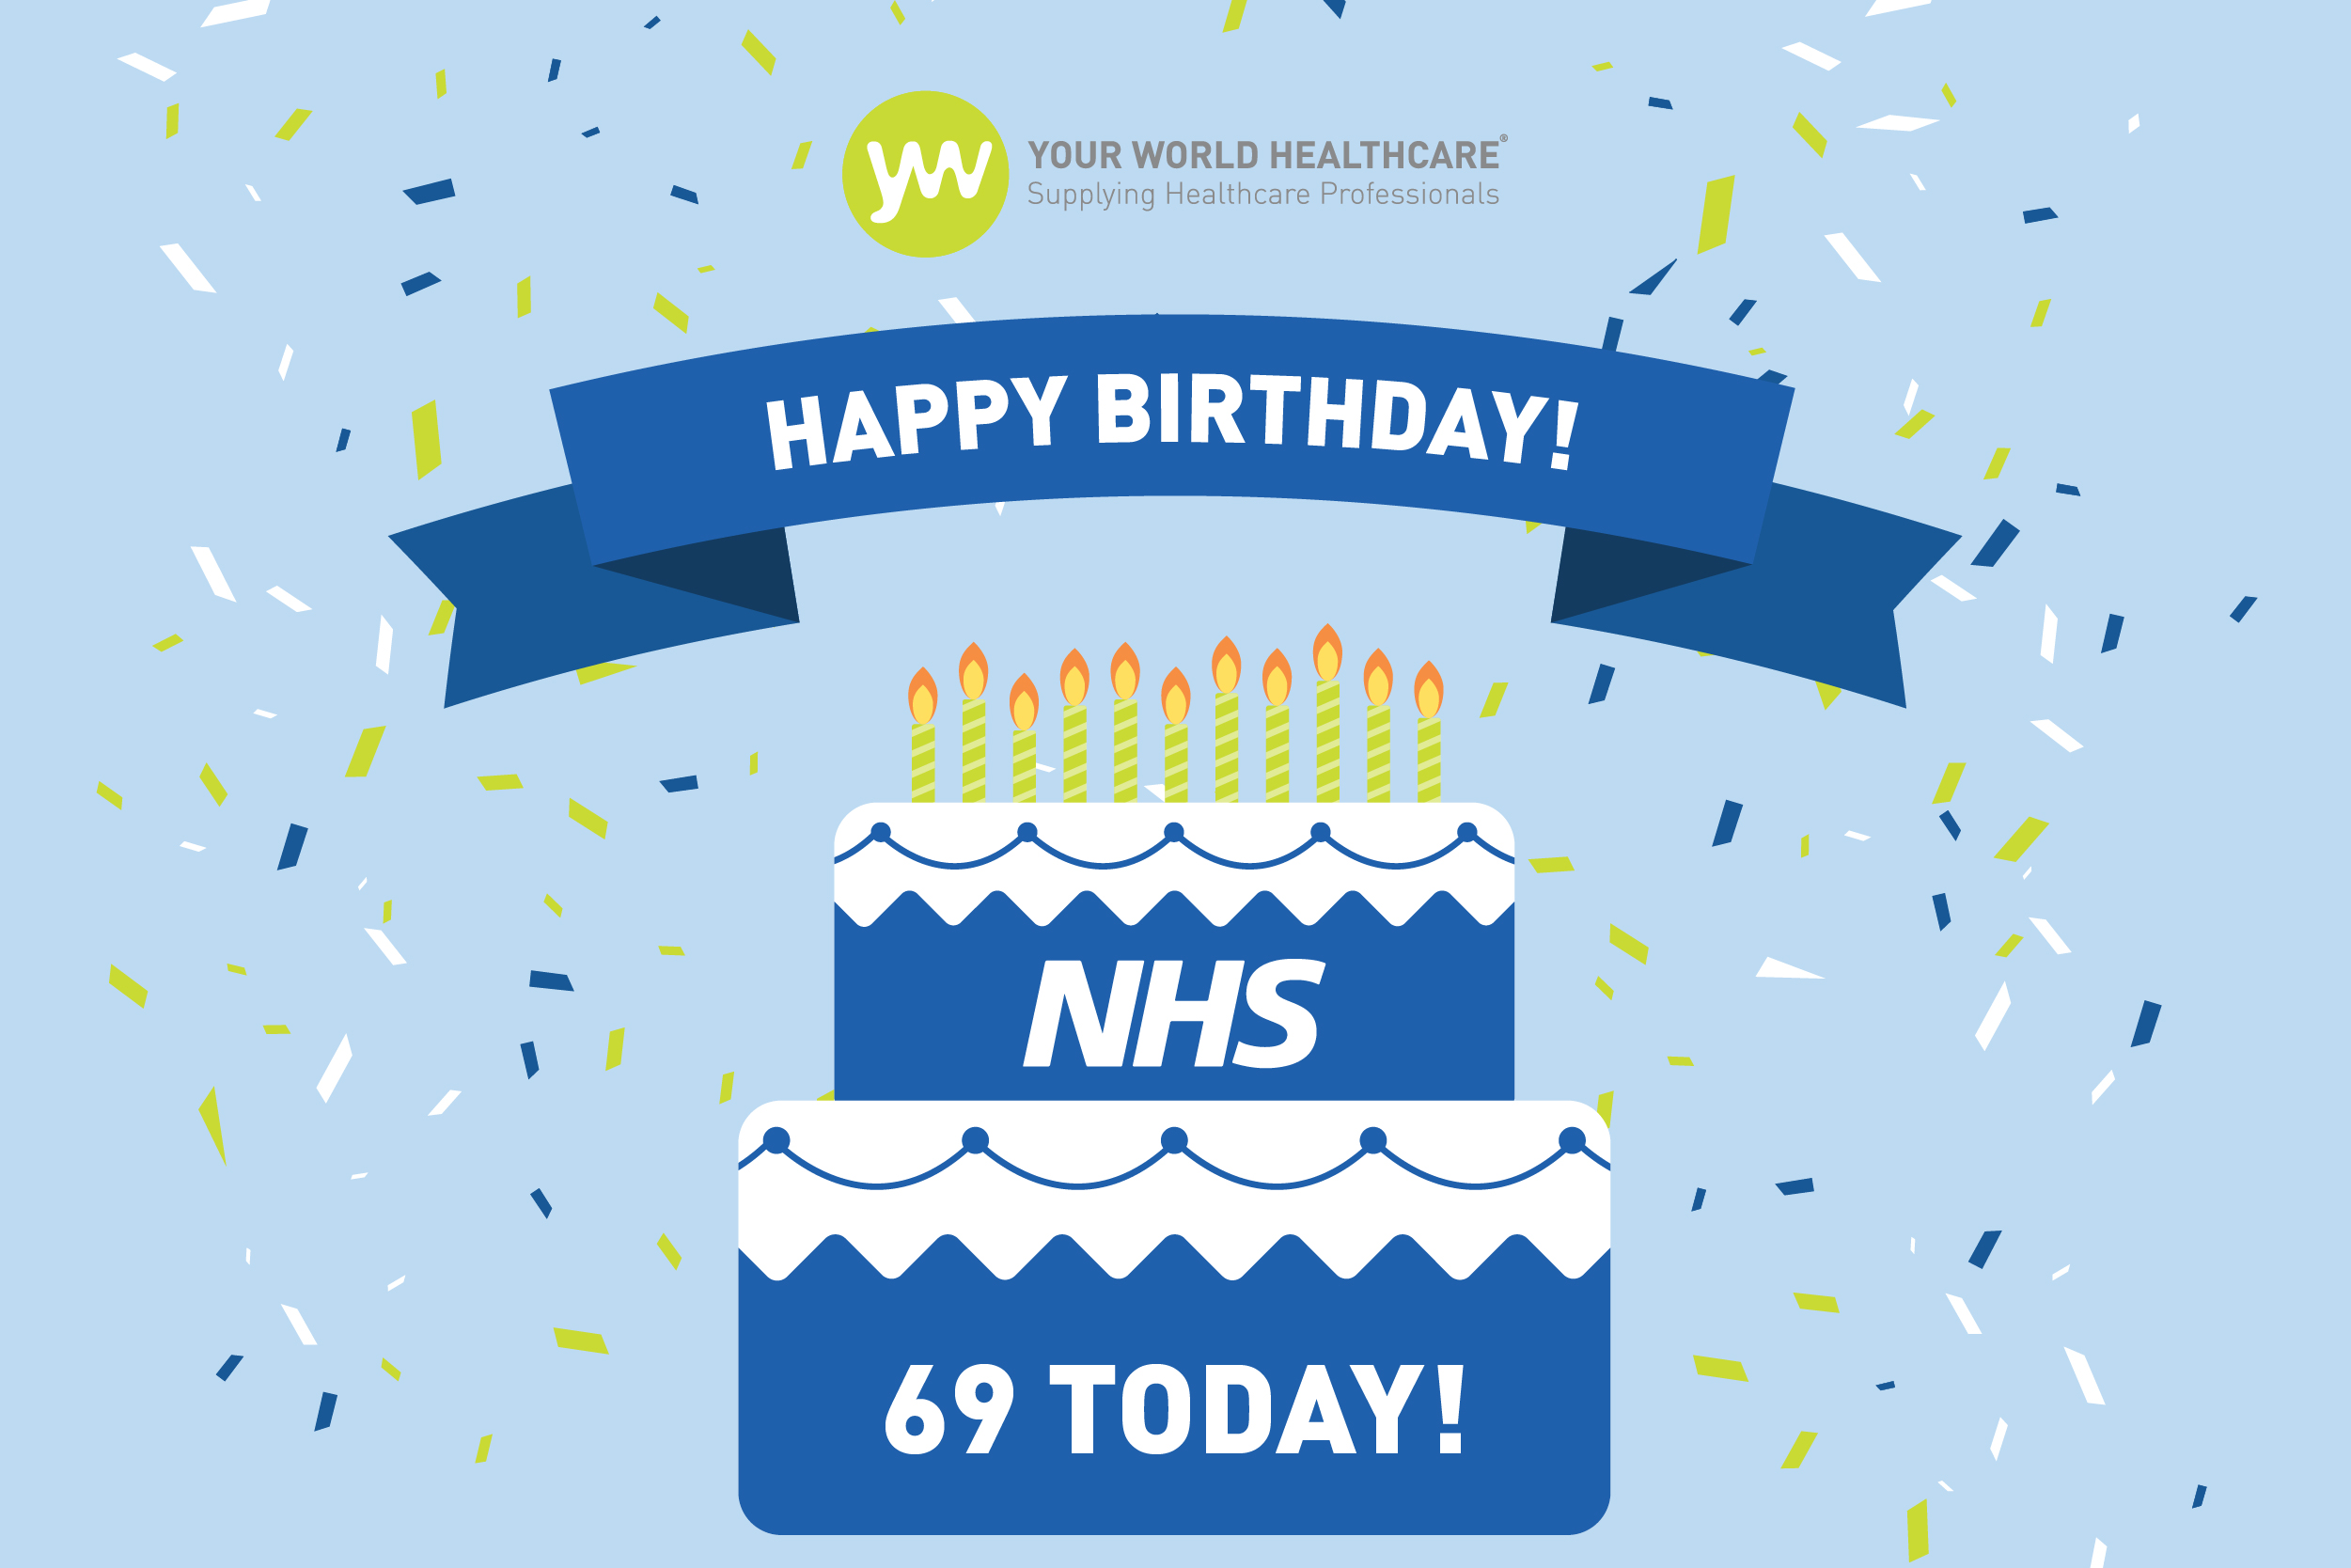 Happy 69th Birthday to the NHS!